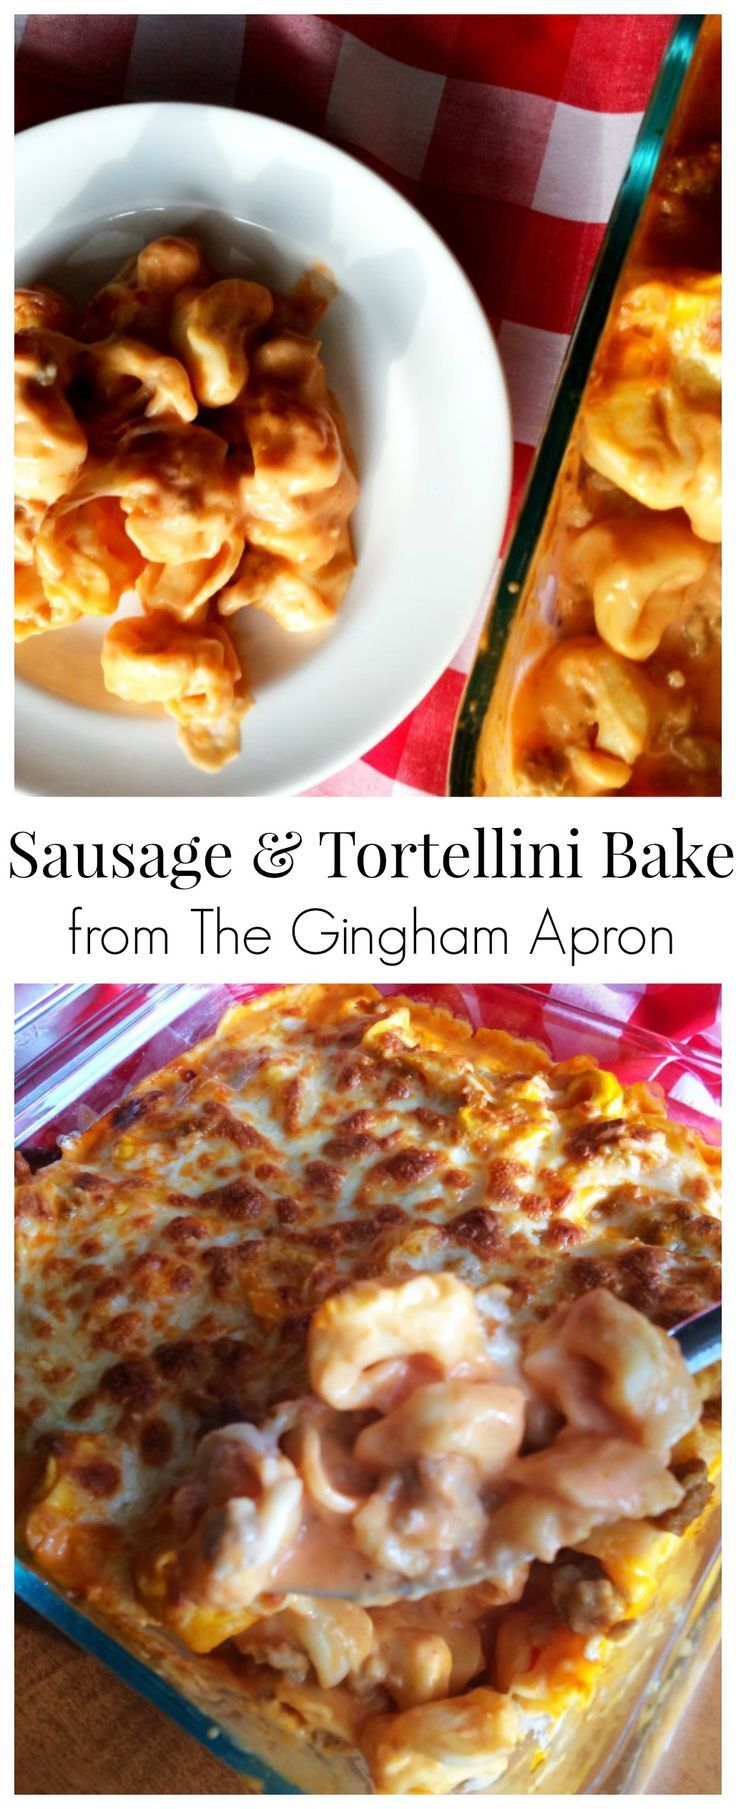 Sausage and Tortellini Bake- quick and easy and delicious! A perfect weeknight meal.